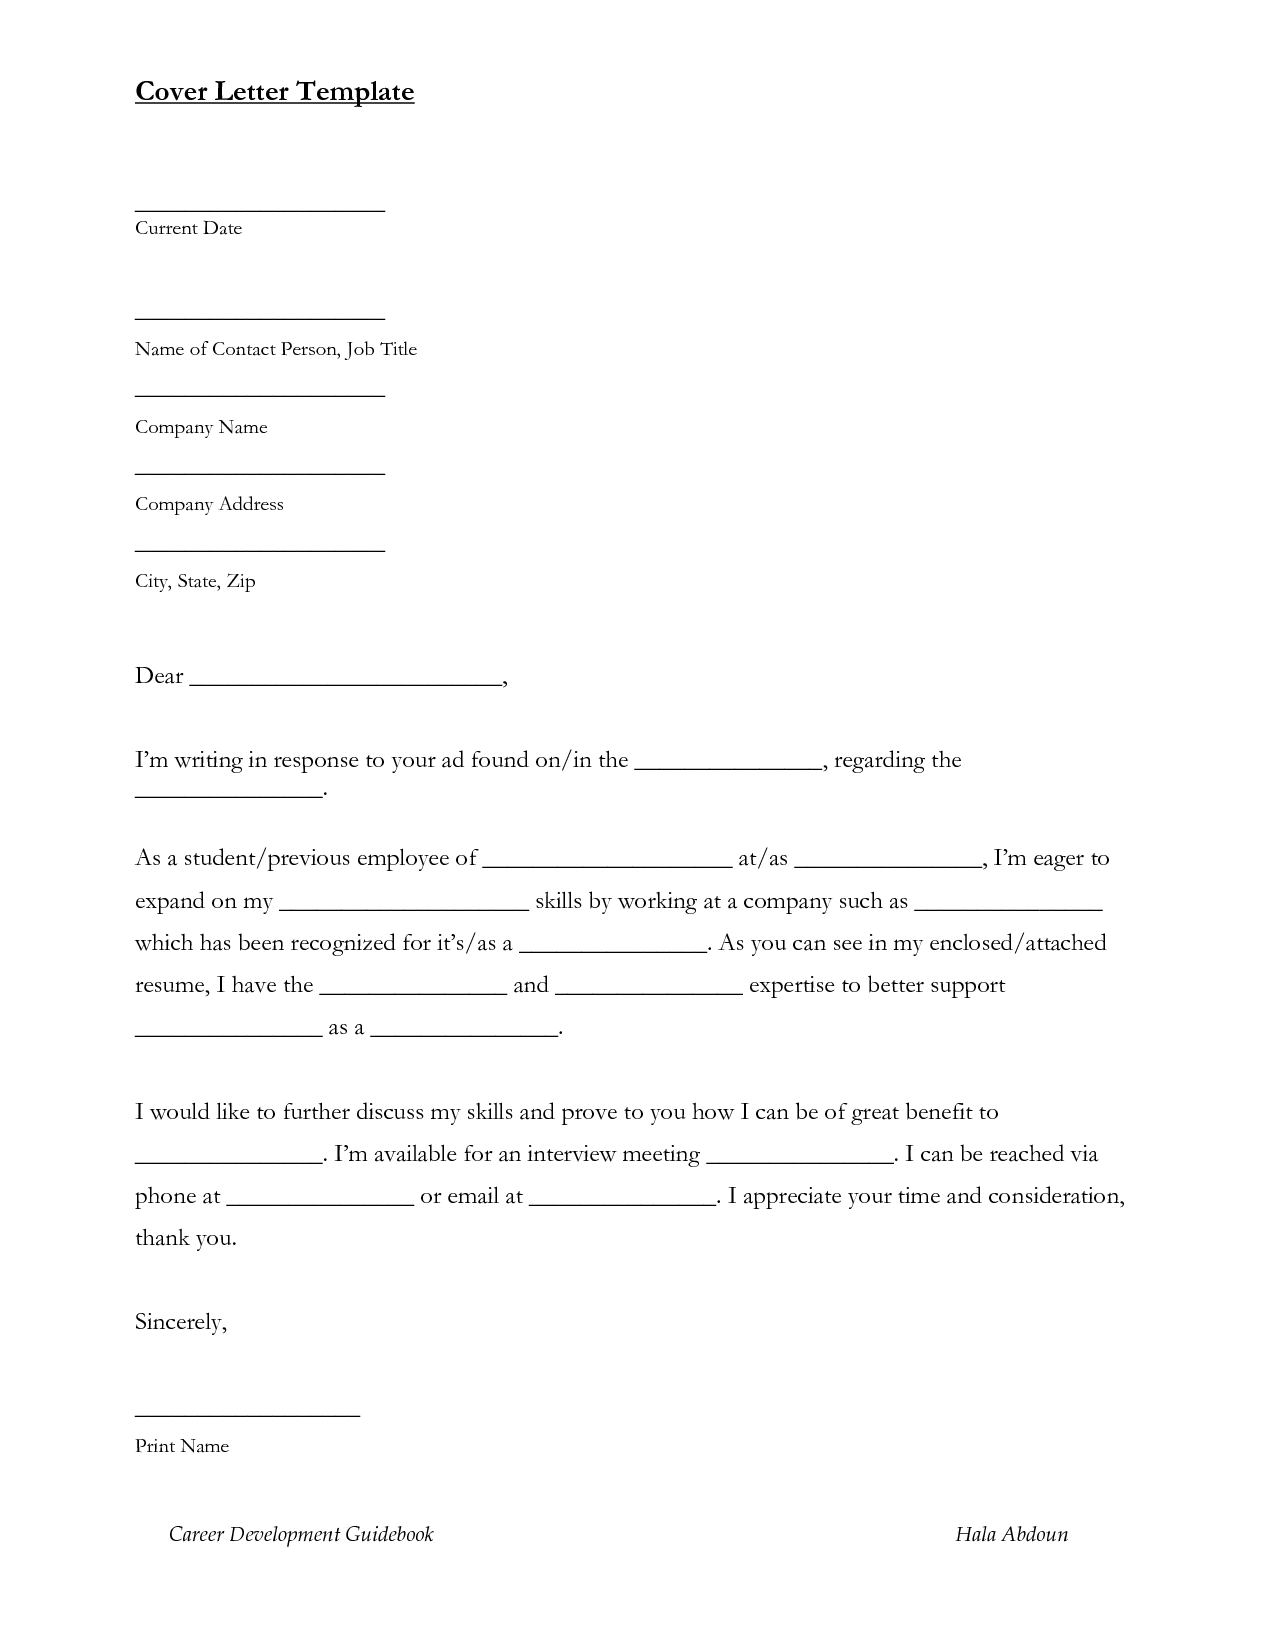 Simple Cover Letter Template writing in response